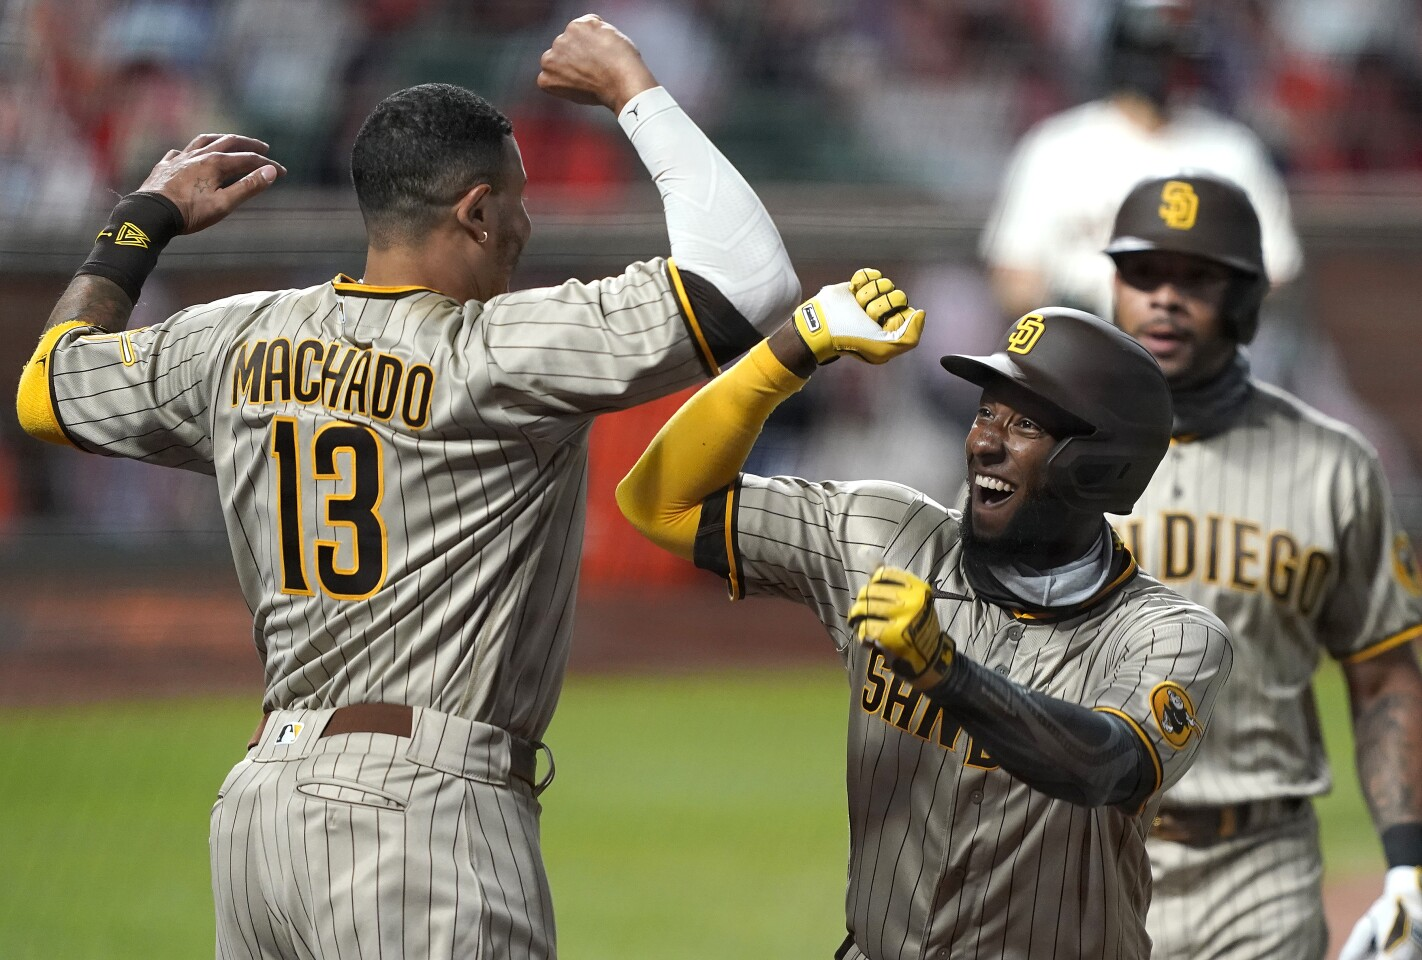 SAN FRANCISCO, CALIFORNIA - JULY 30: Jurickson Profar #10 and Manny Machado #13 of the San Diego Padres celebrates after Profar's two-run home run against the San Francisco Giants in the top of the sixth inning at Oracle Park on July 30, 2020 in San Francisco, California. (Photo by Thearon W. Henderson/Getty Images)